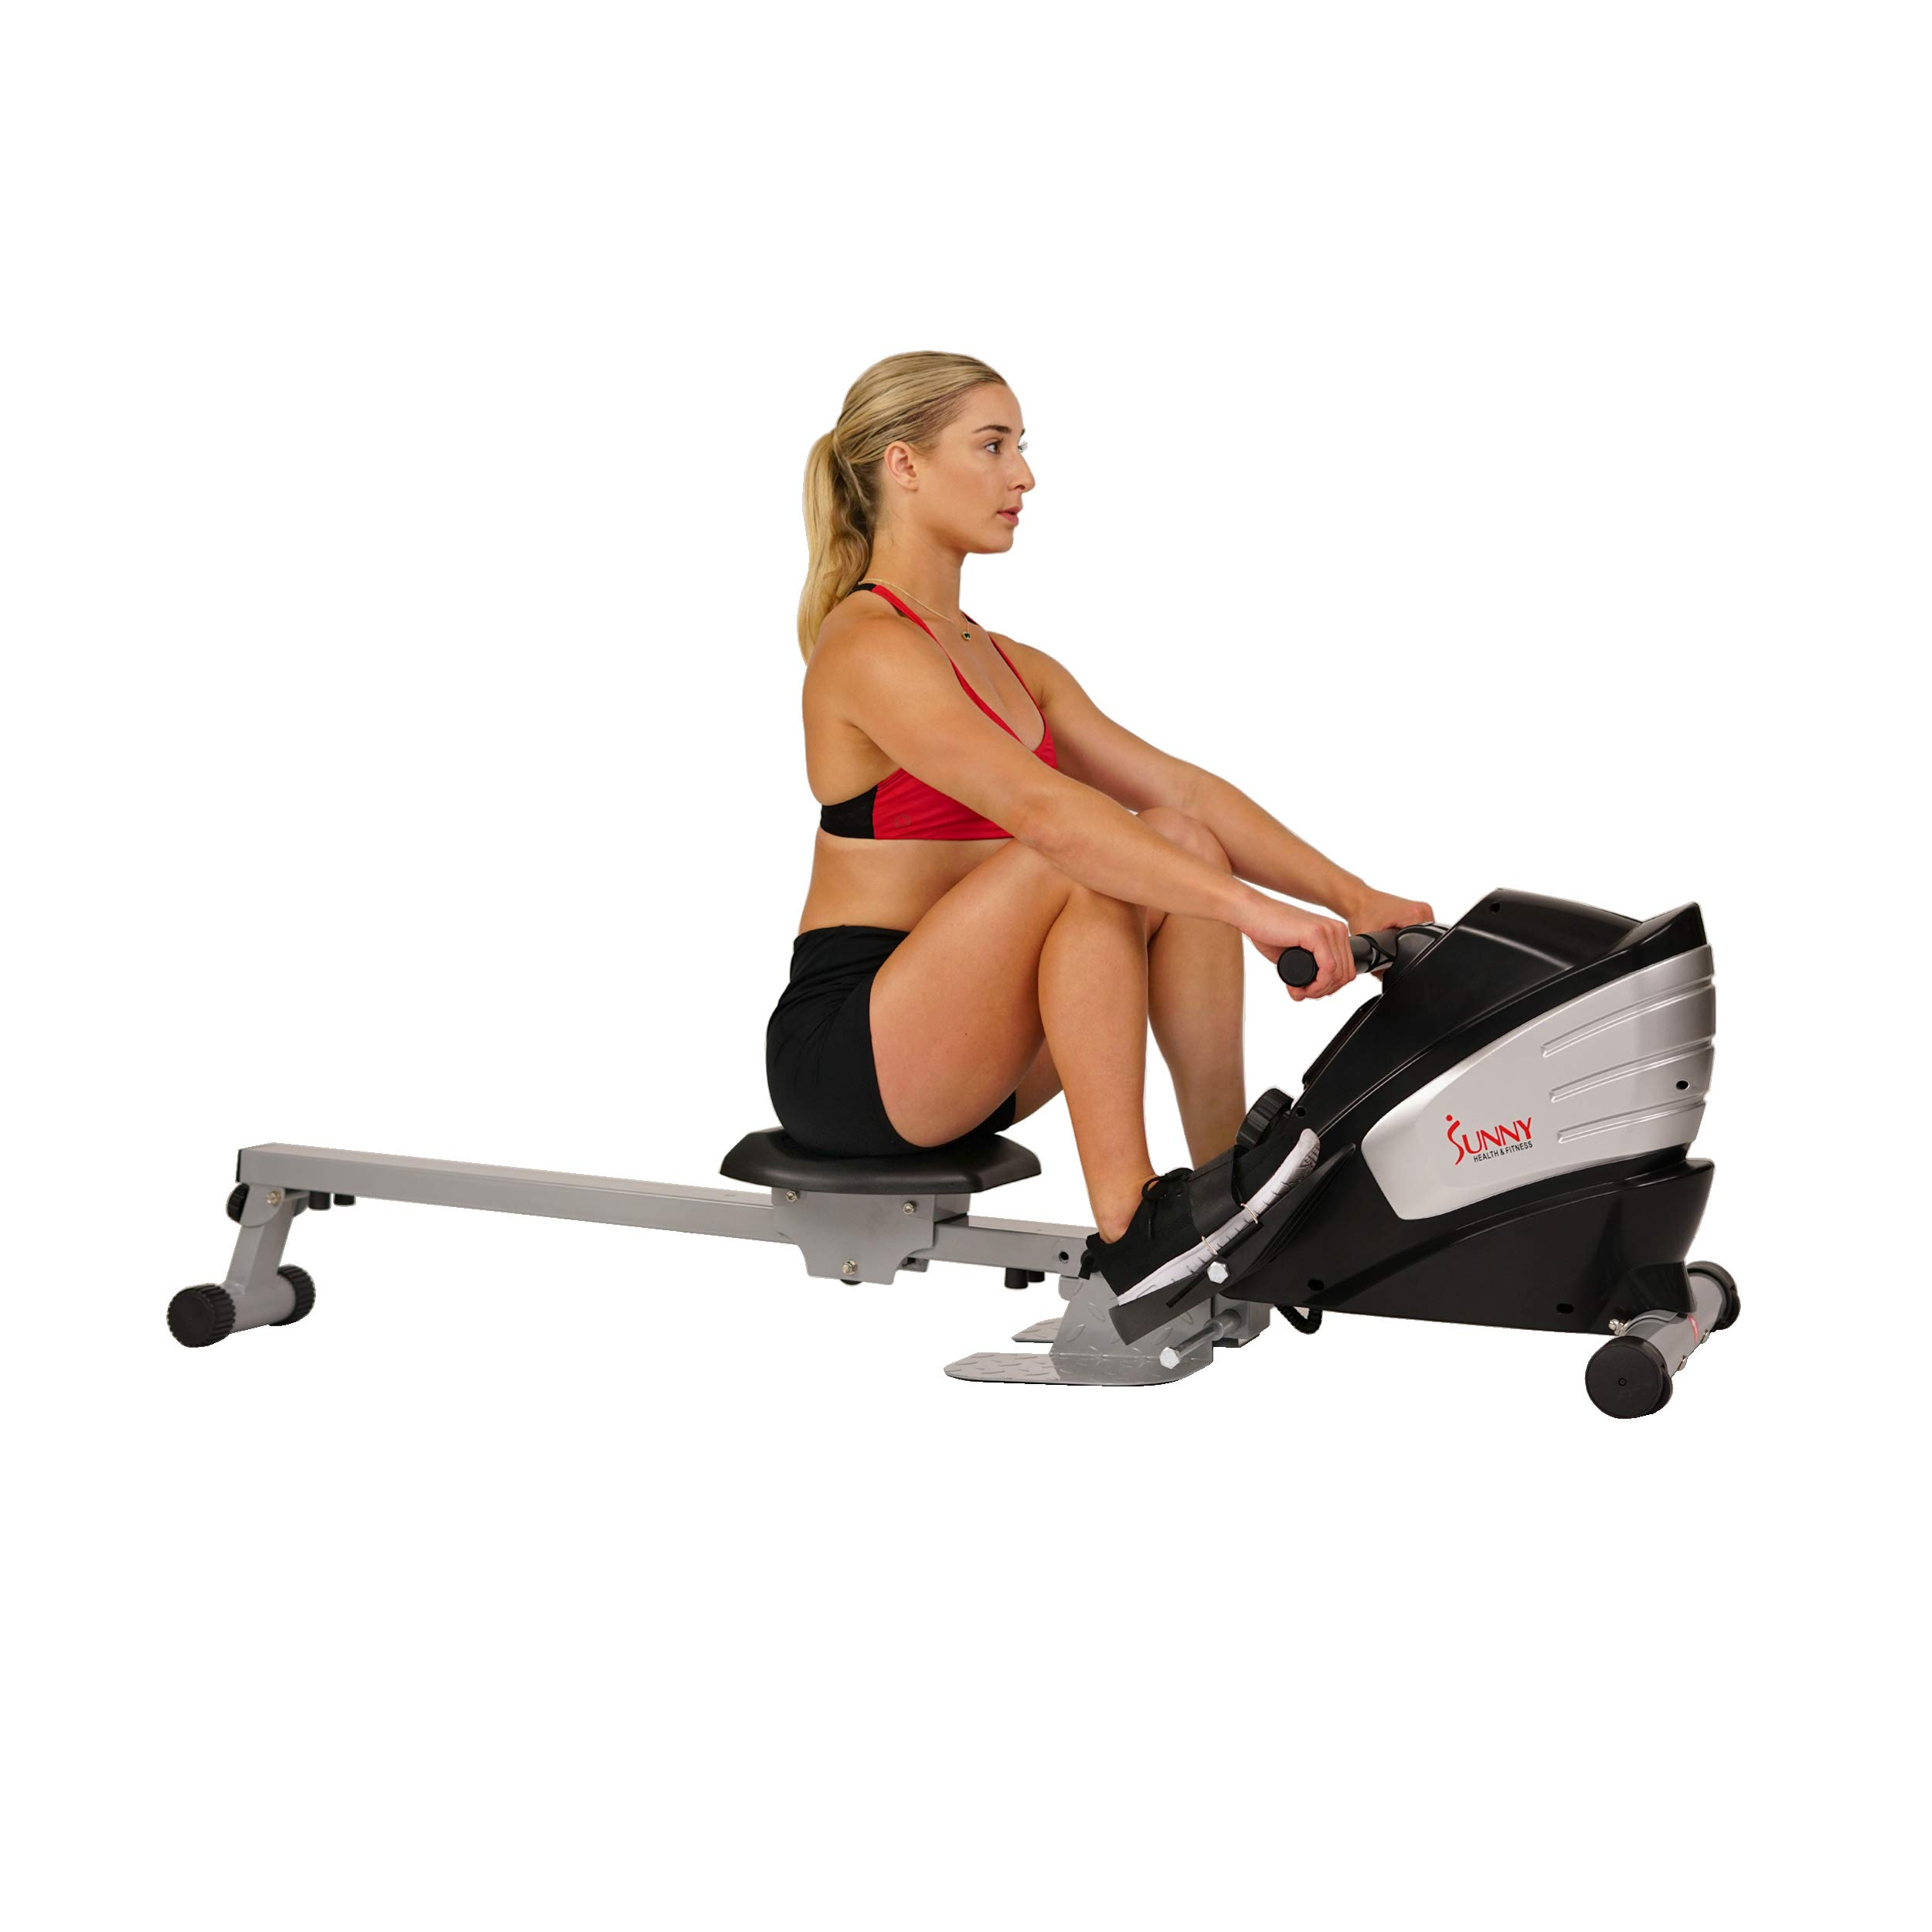 Sunny Health & Fitness Dual Function Magnetic Rowing Machine w/ Digital Monitor, Multi-Exercise Step Plates and Foldable -  SF-RW5622 by Sunny Health & Fitness (Image #2)